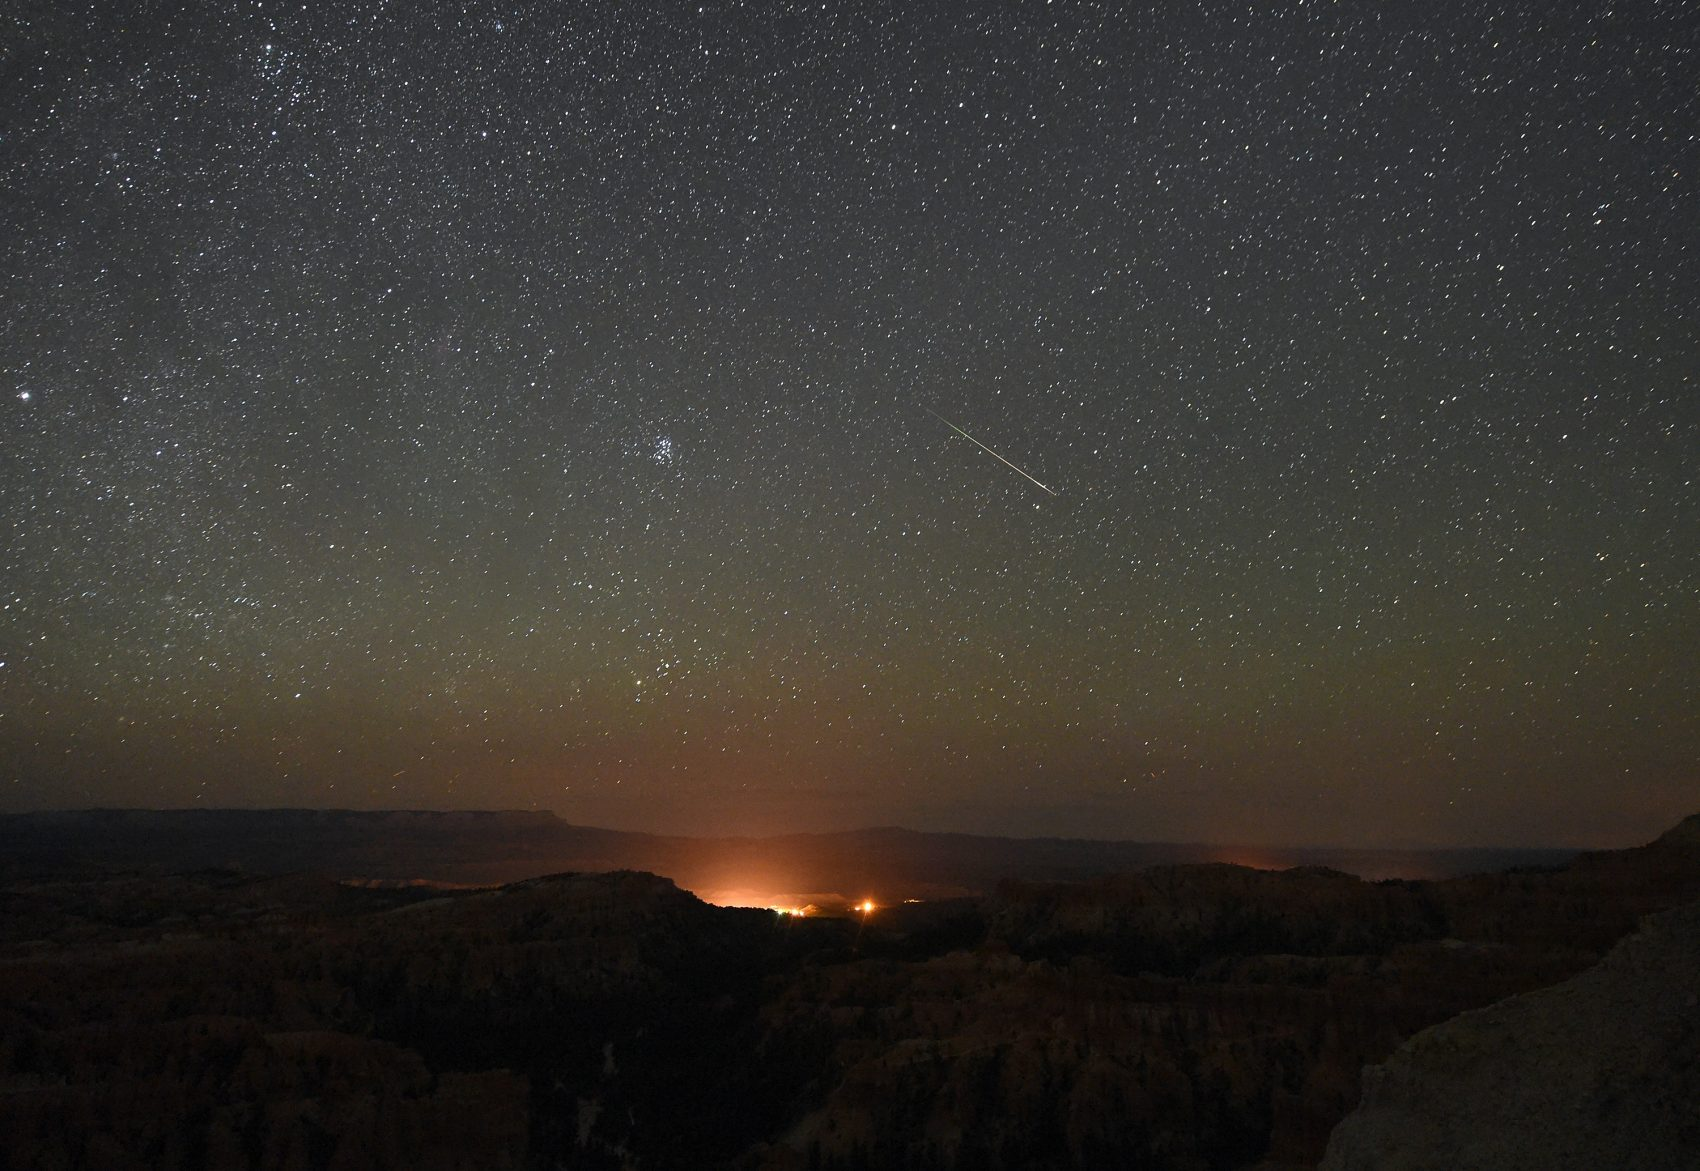 A Perseid meteor streaks across the sky above Inspiration Point early on August 12, 2016 in Bryce Canyon National Park, Utah. (Ethan Miller/Getty Images)